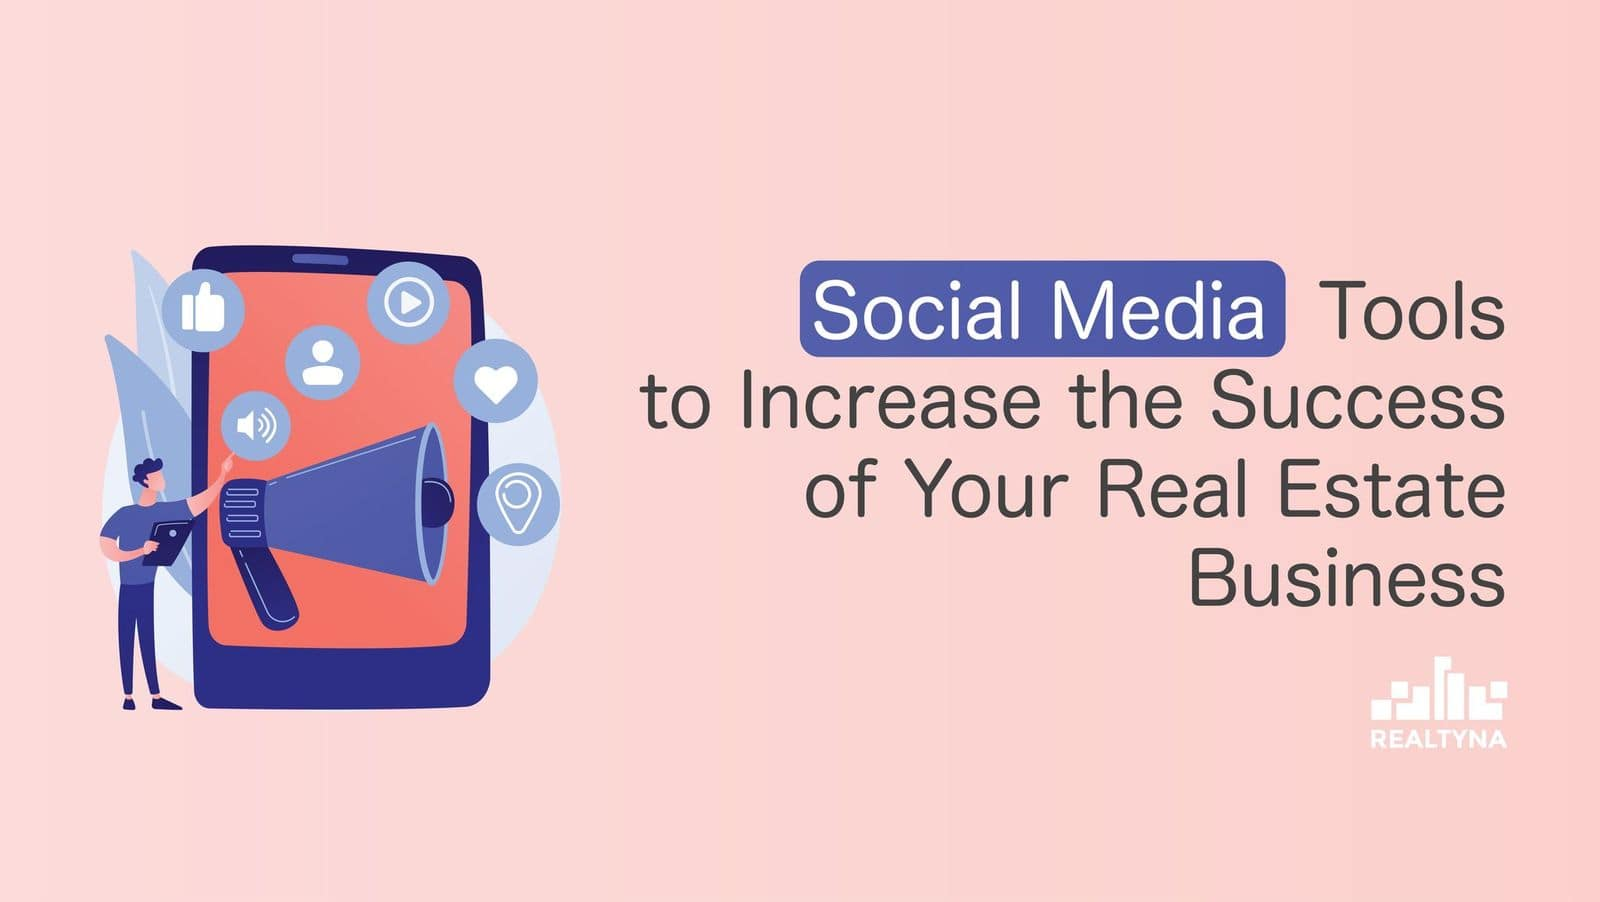 Social Media Tools to Increase the Success of Your Real Estate Business